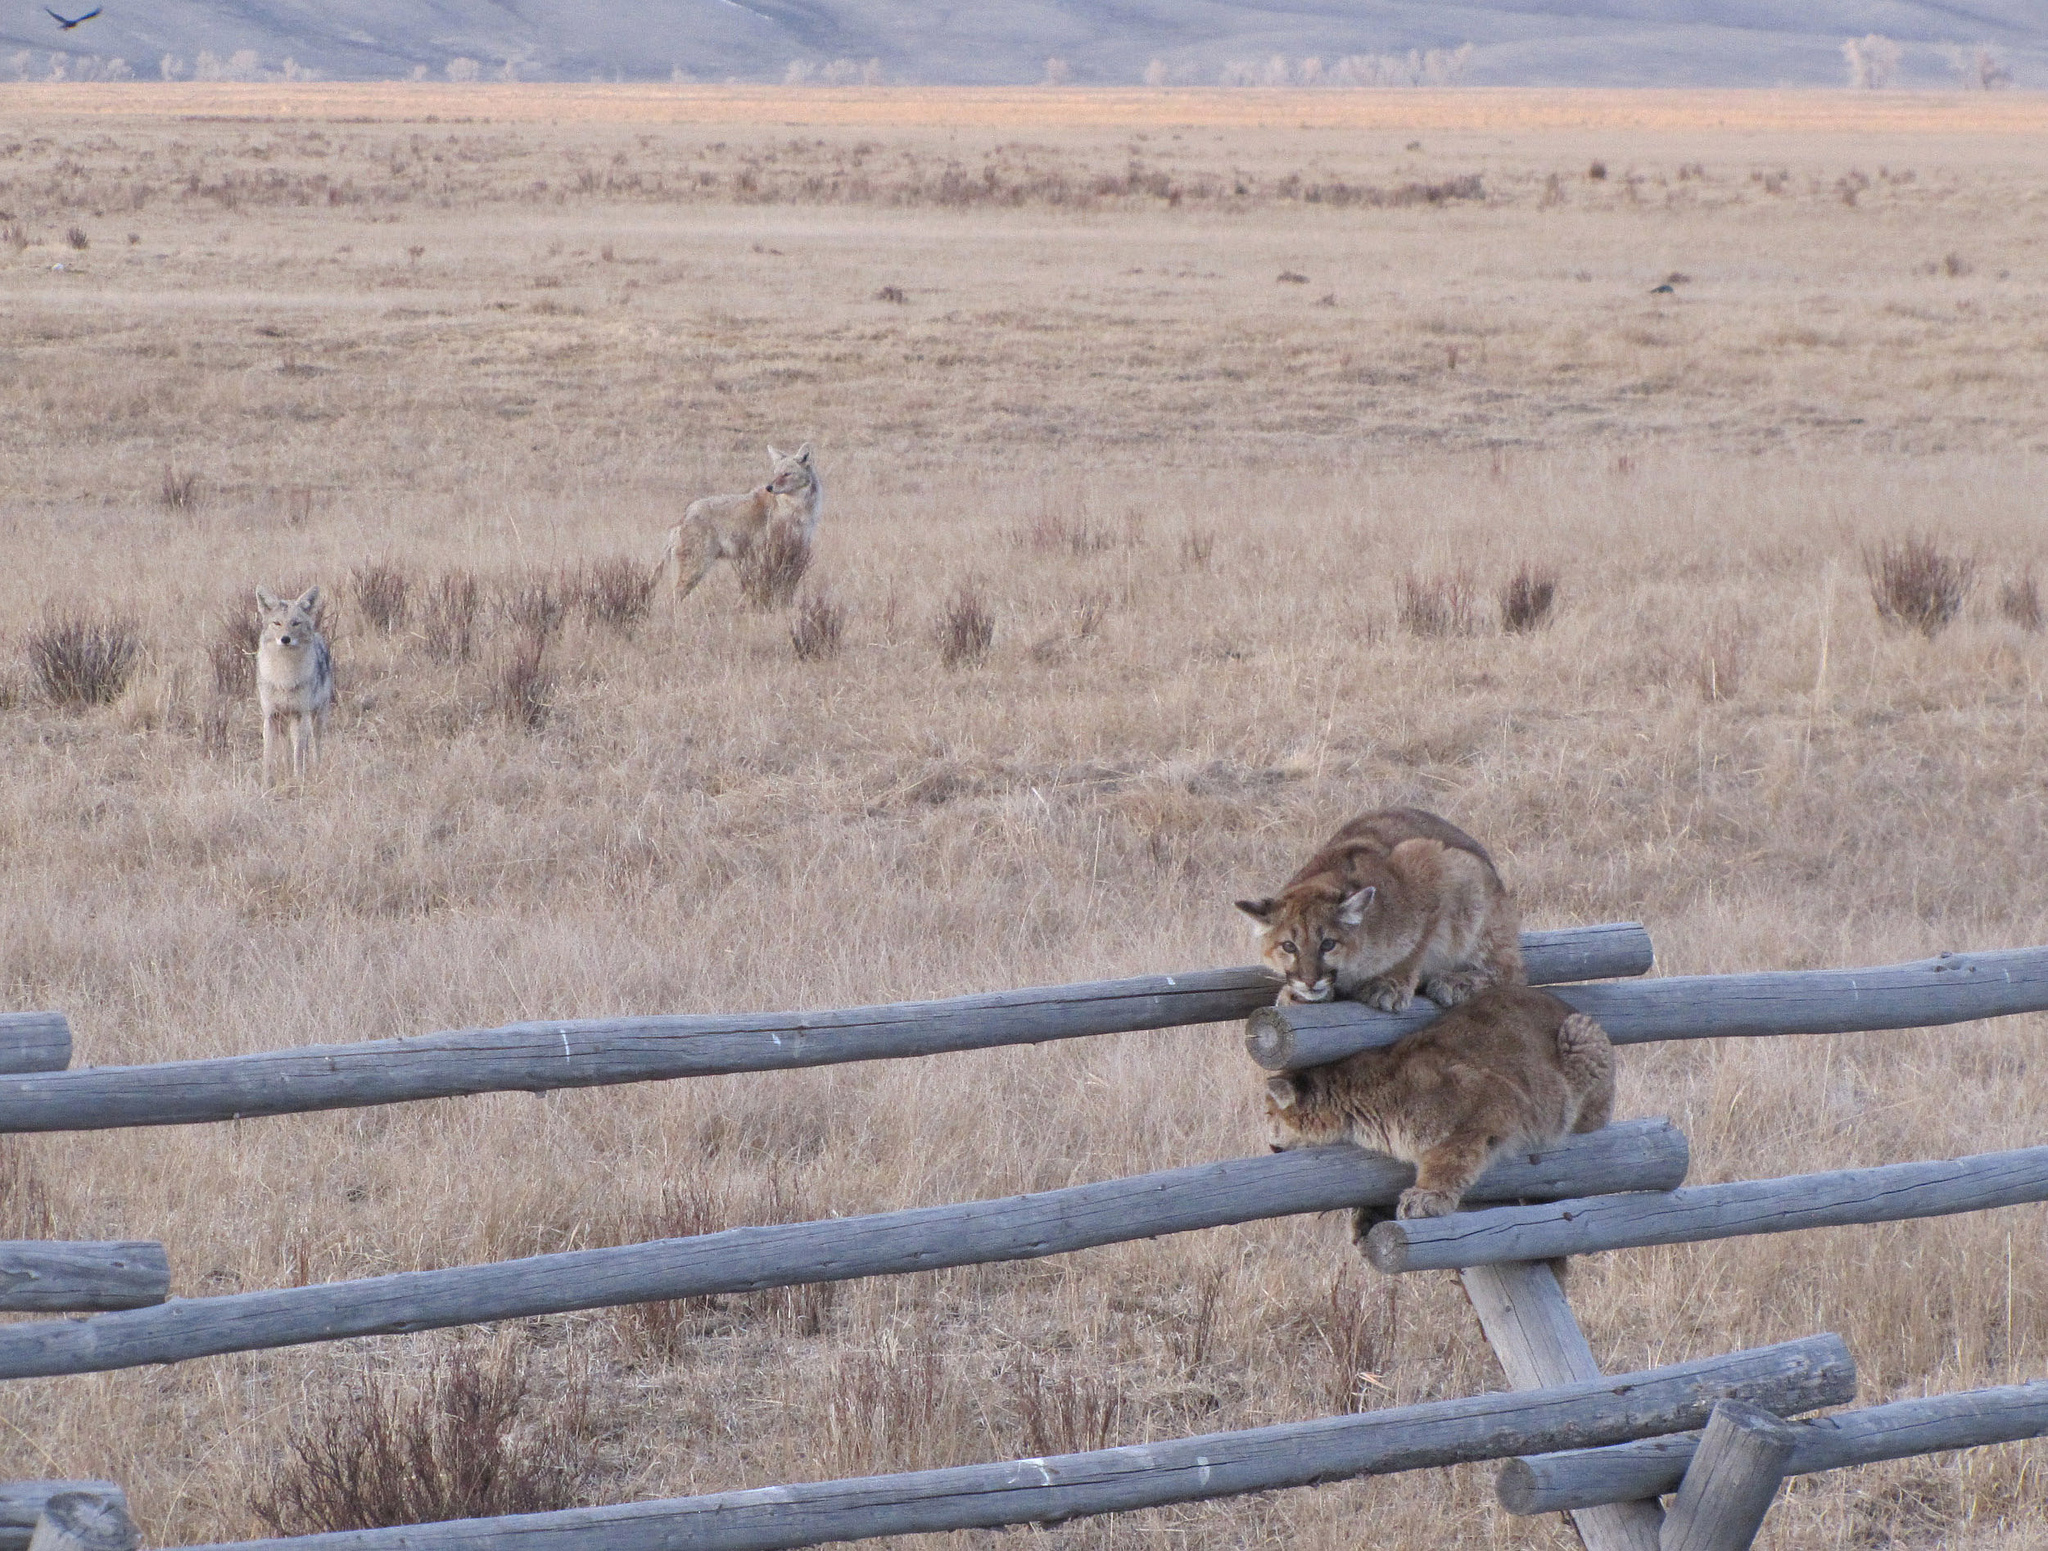 The National Elk Refuge's Outdoor Recreation Planner witnessed a spectacular standoff between two juvenile mountain lions and five coyotes. The coyotes let the cats know they weren't welcome in the area. The mountain lions sought safety on a buck and rail fence for over an hour while the coyotes lurked in the background. Now, two of the five coyotes can be seen in the background as one of the mountain lions looks anxiously behind. Credit: Lori Iverson / USFWS.